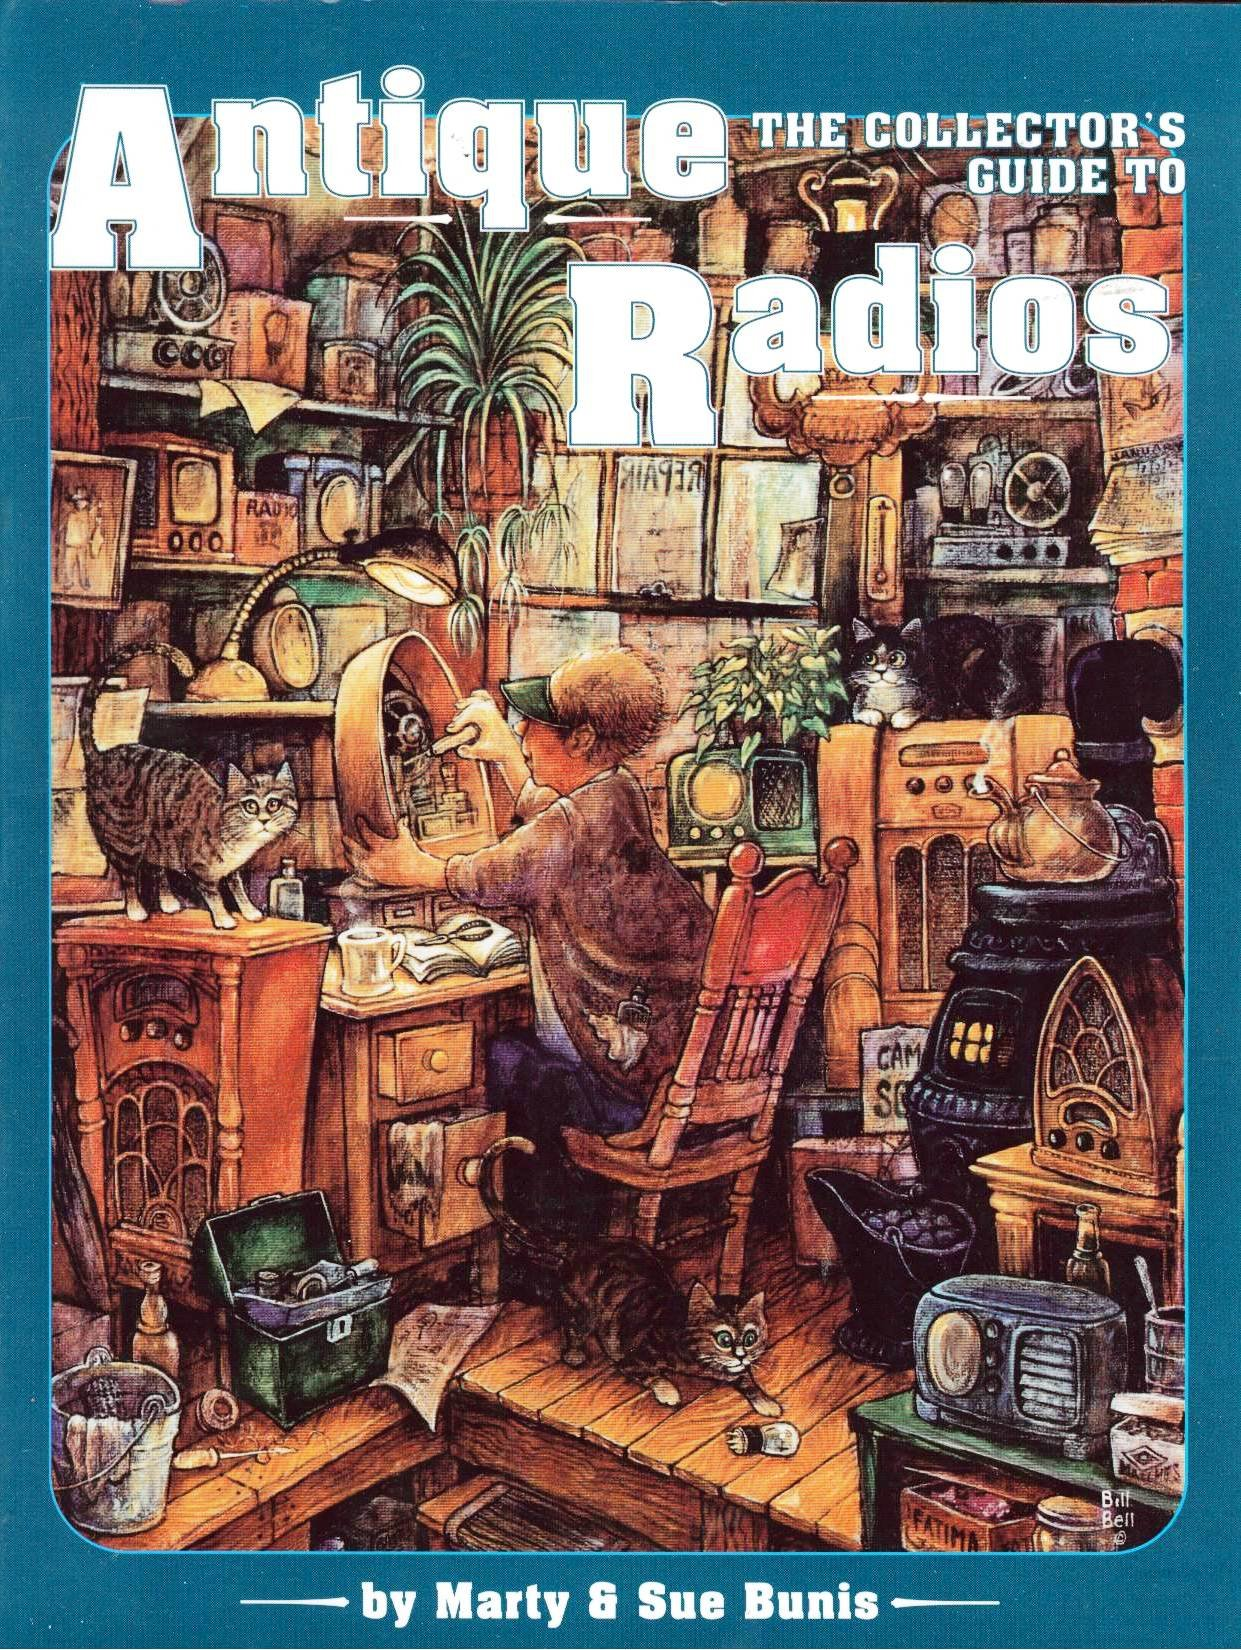 The Collector's Guide to Antique Radios